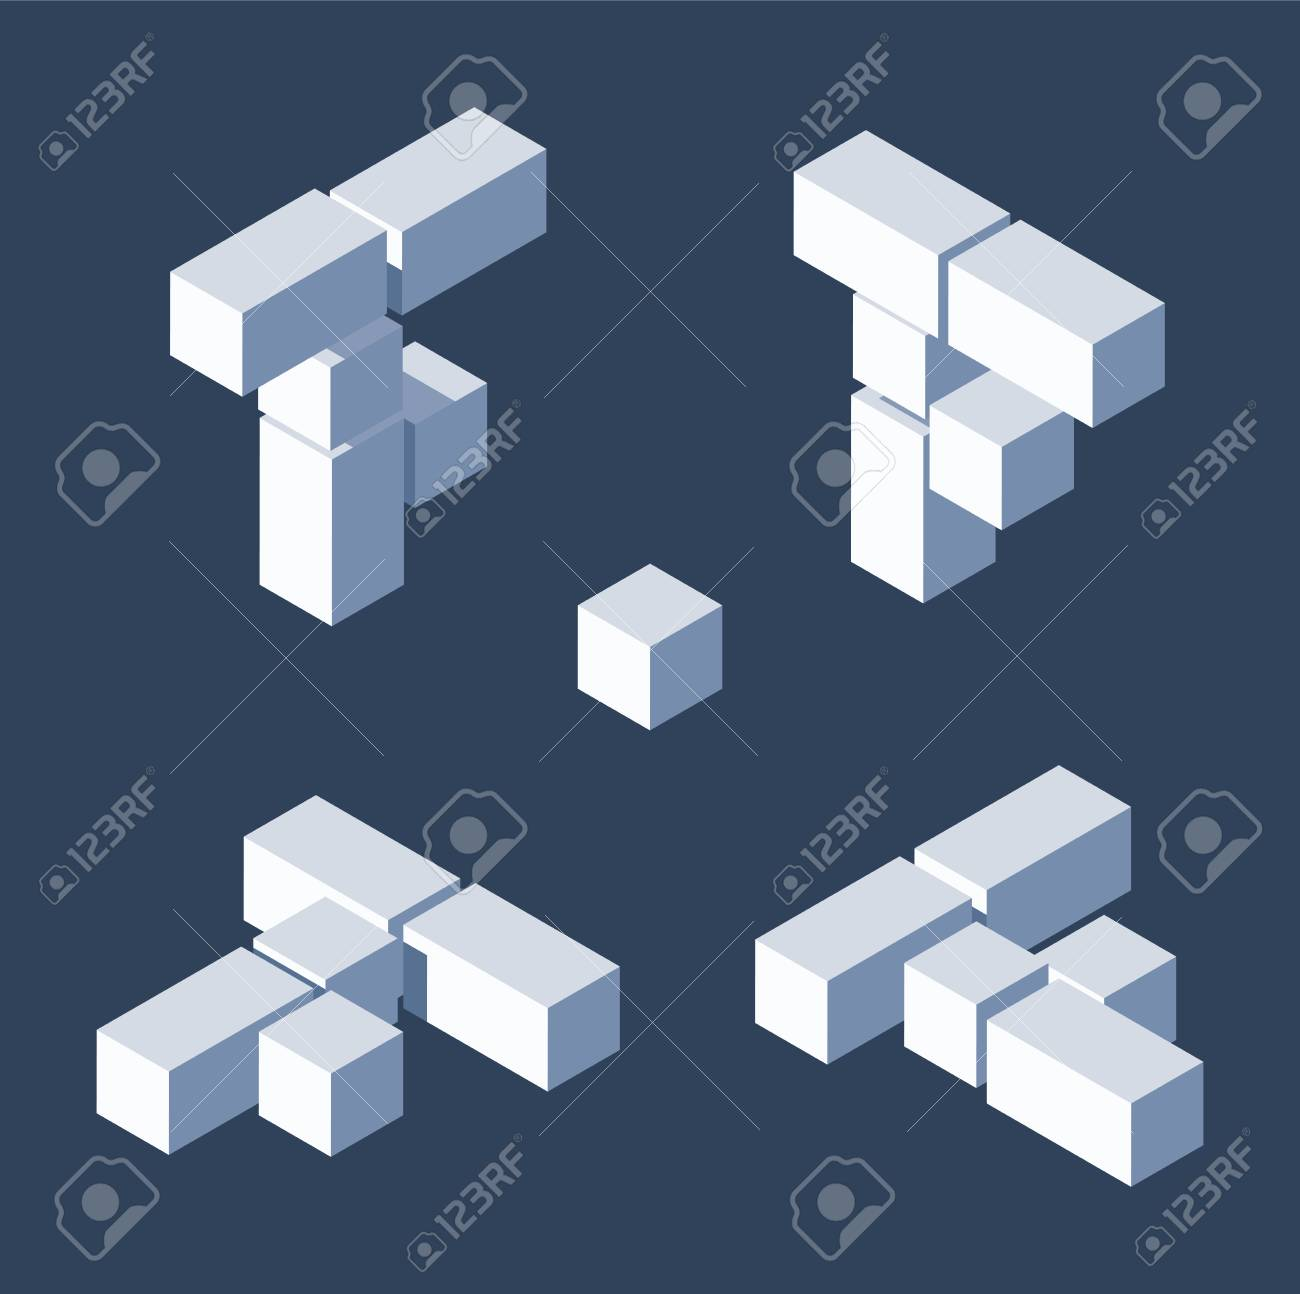 Isometric letters F in varions views. Made with 3d blocks and cubes. - 115151197